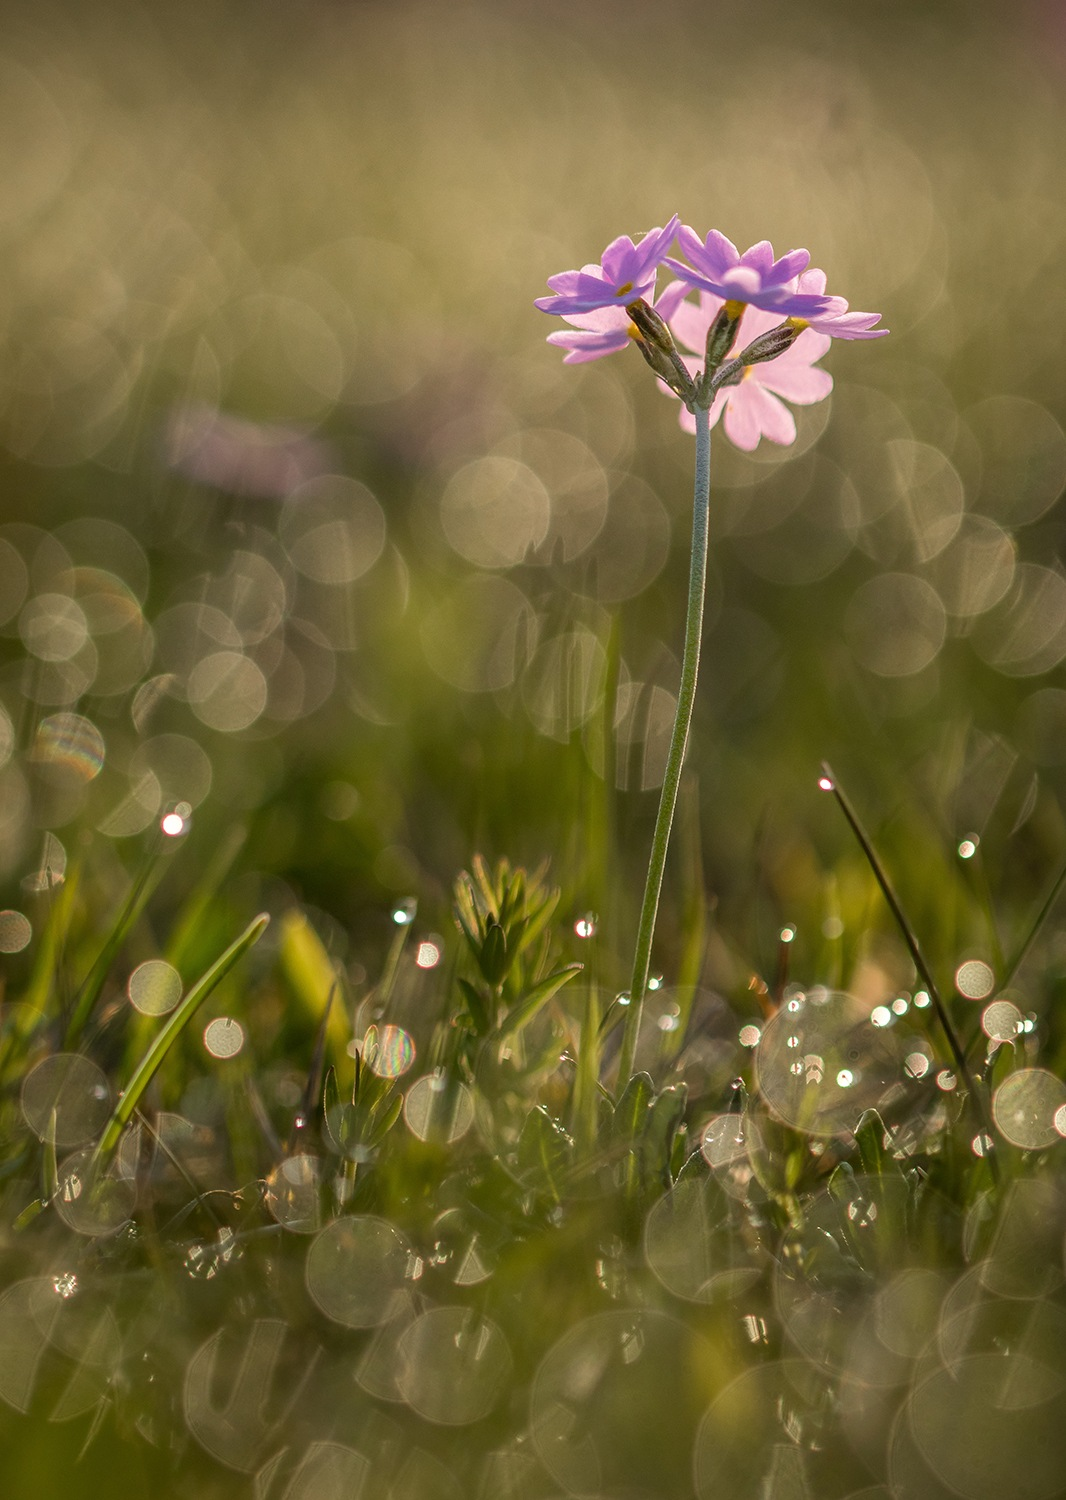 In the morning dew by elisah